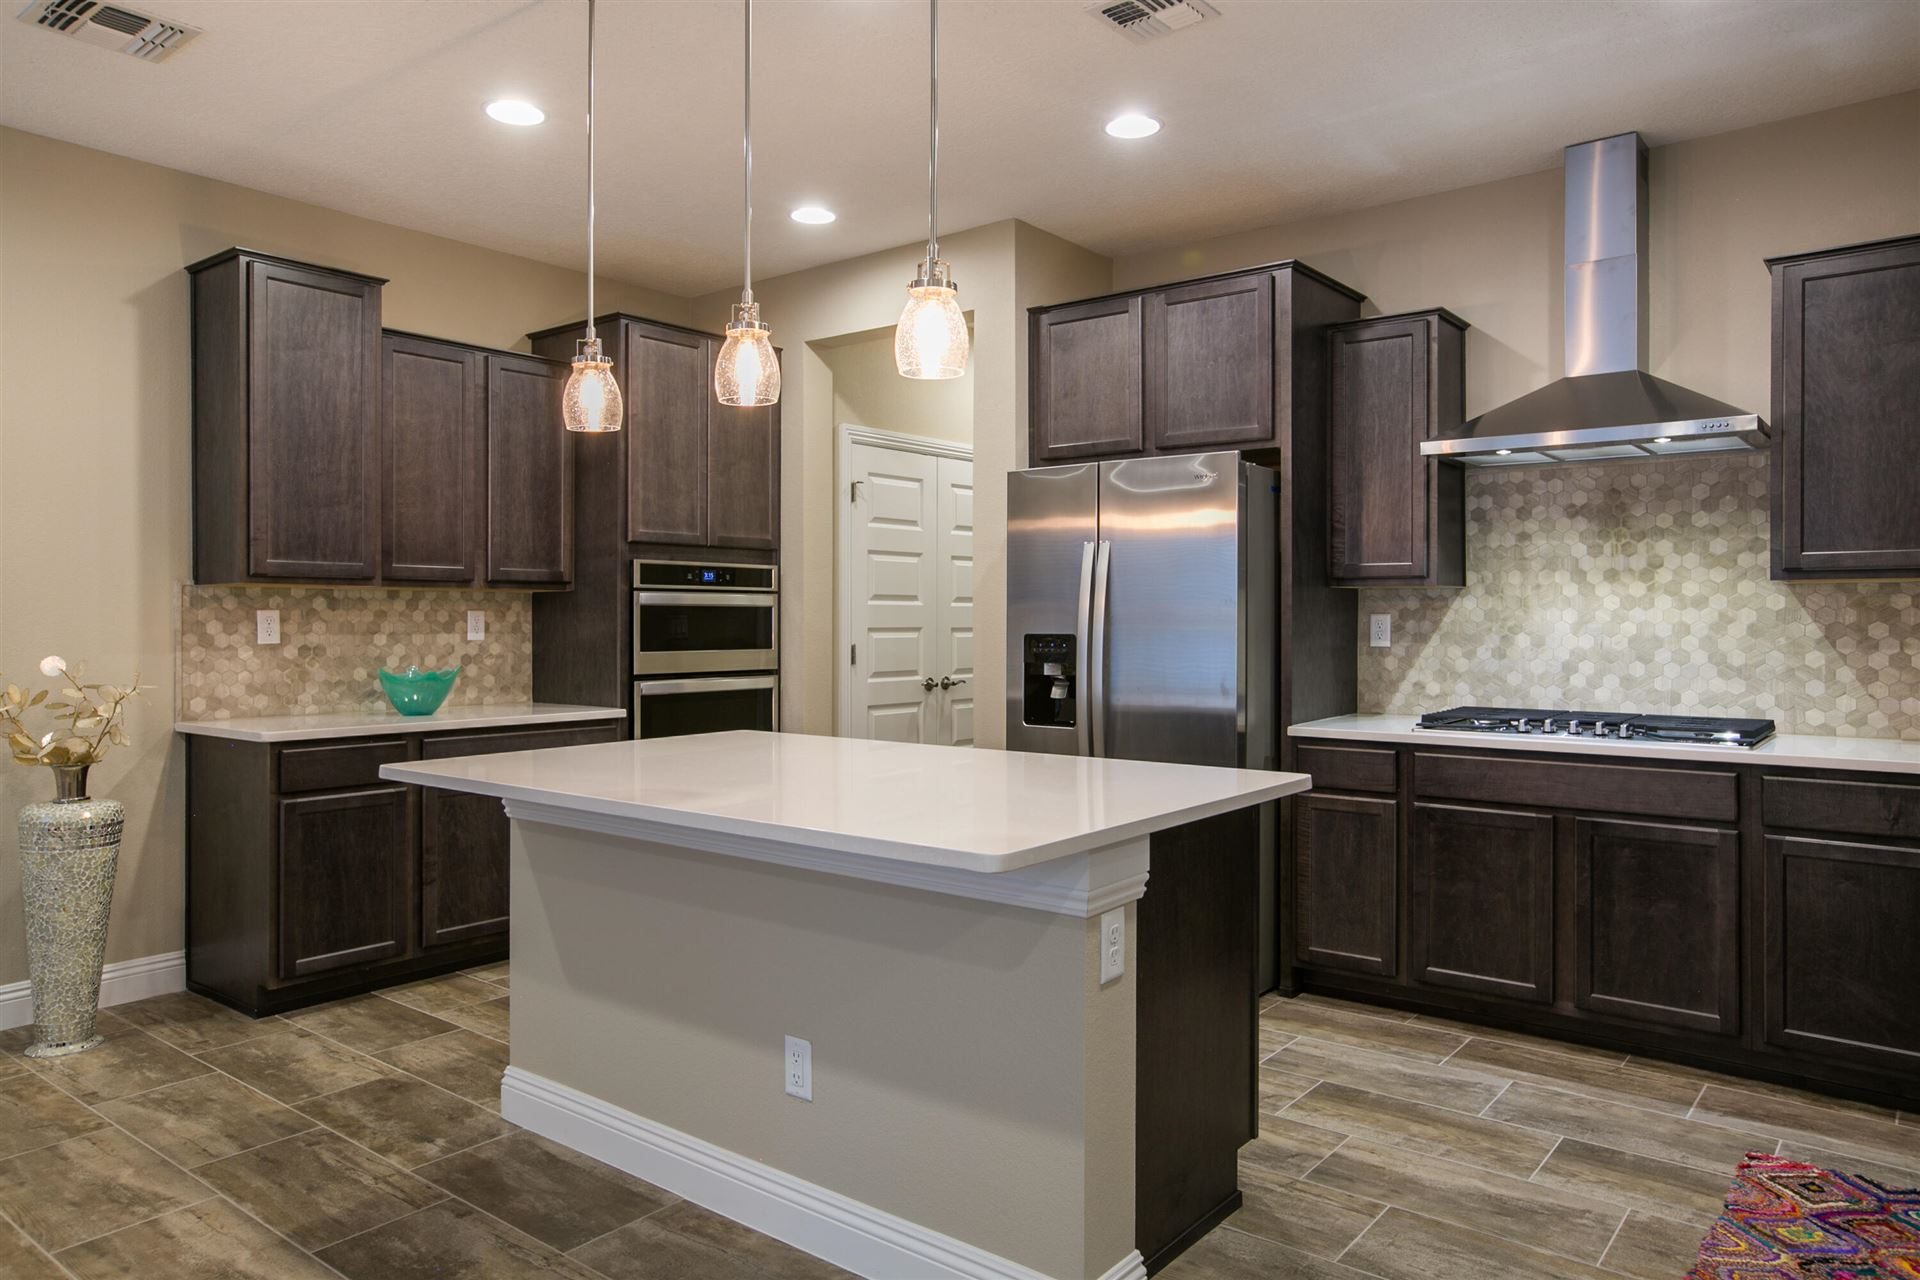 6306 Vista Del Bosque Drive, Albuquerque, NM 87120 - MLS#: 986111